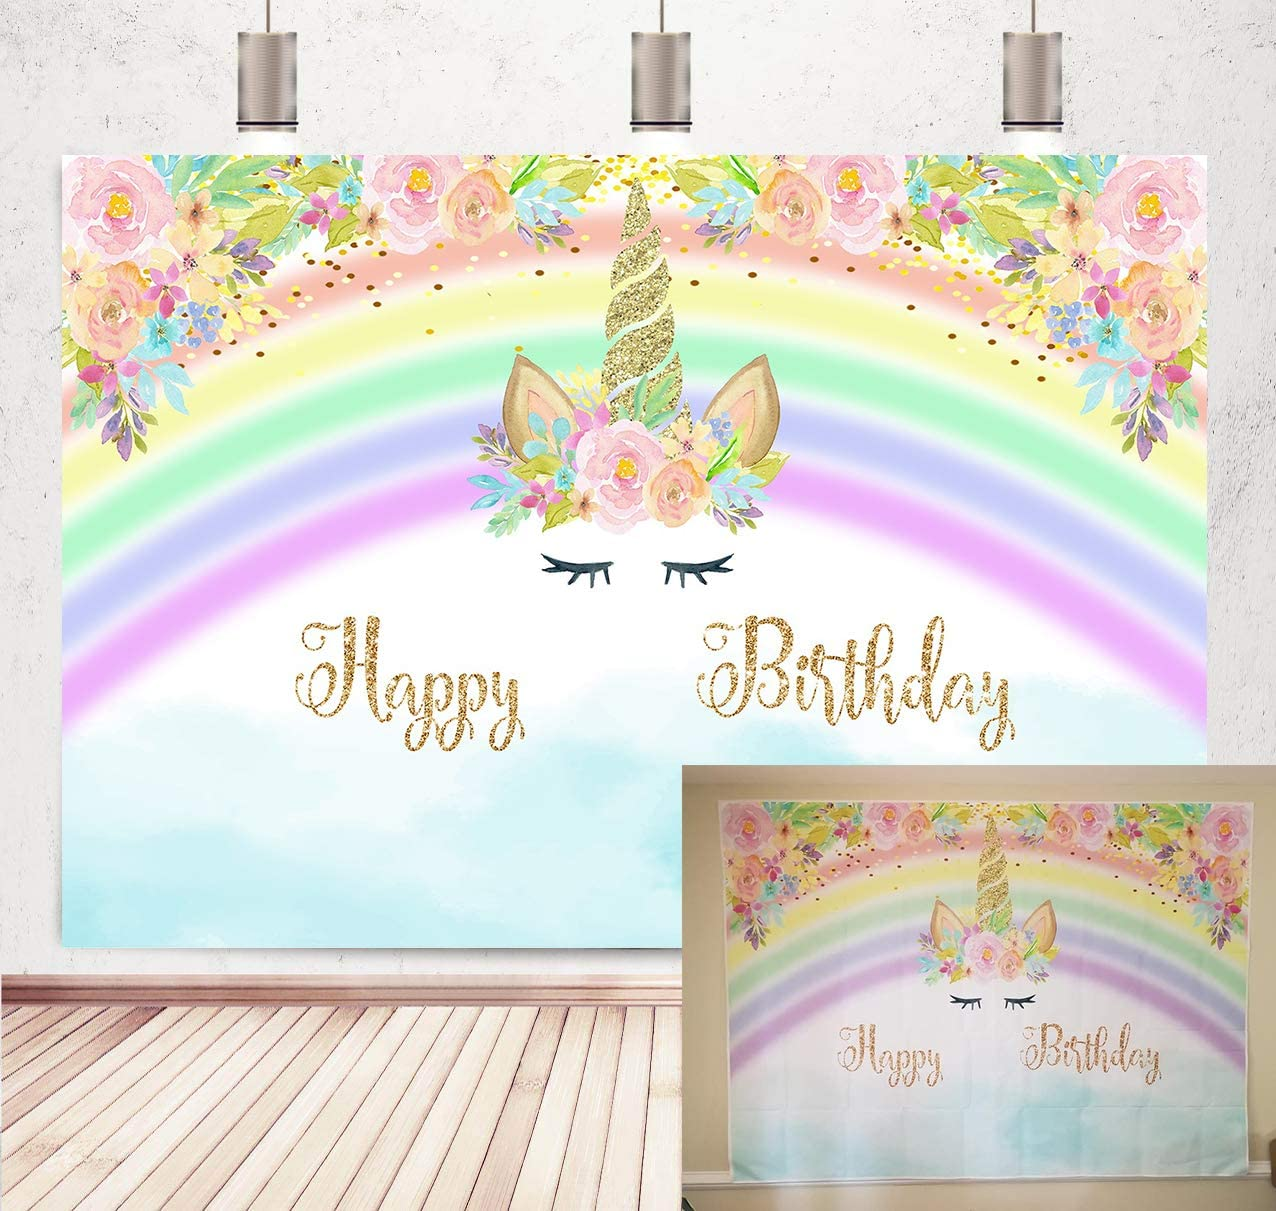 Botong 5x3ft Unicorn Rainbow Birthday Party Colorful Flower Backdrop Photography for Kids Birthday Baby Shower Unicorn Party Decor Background Photo Studio Props Banner